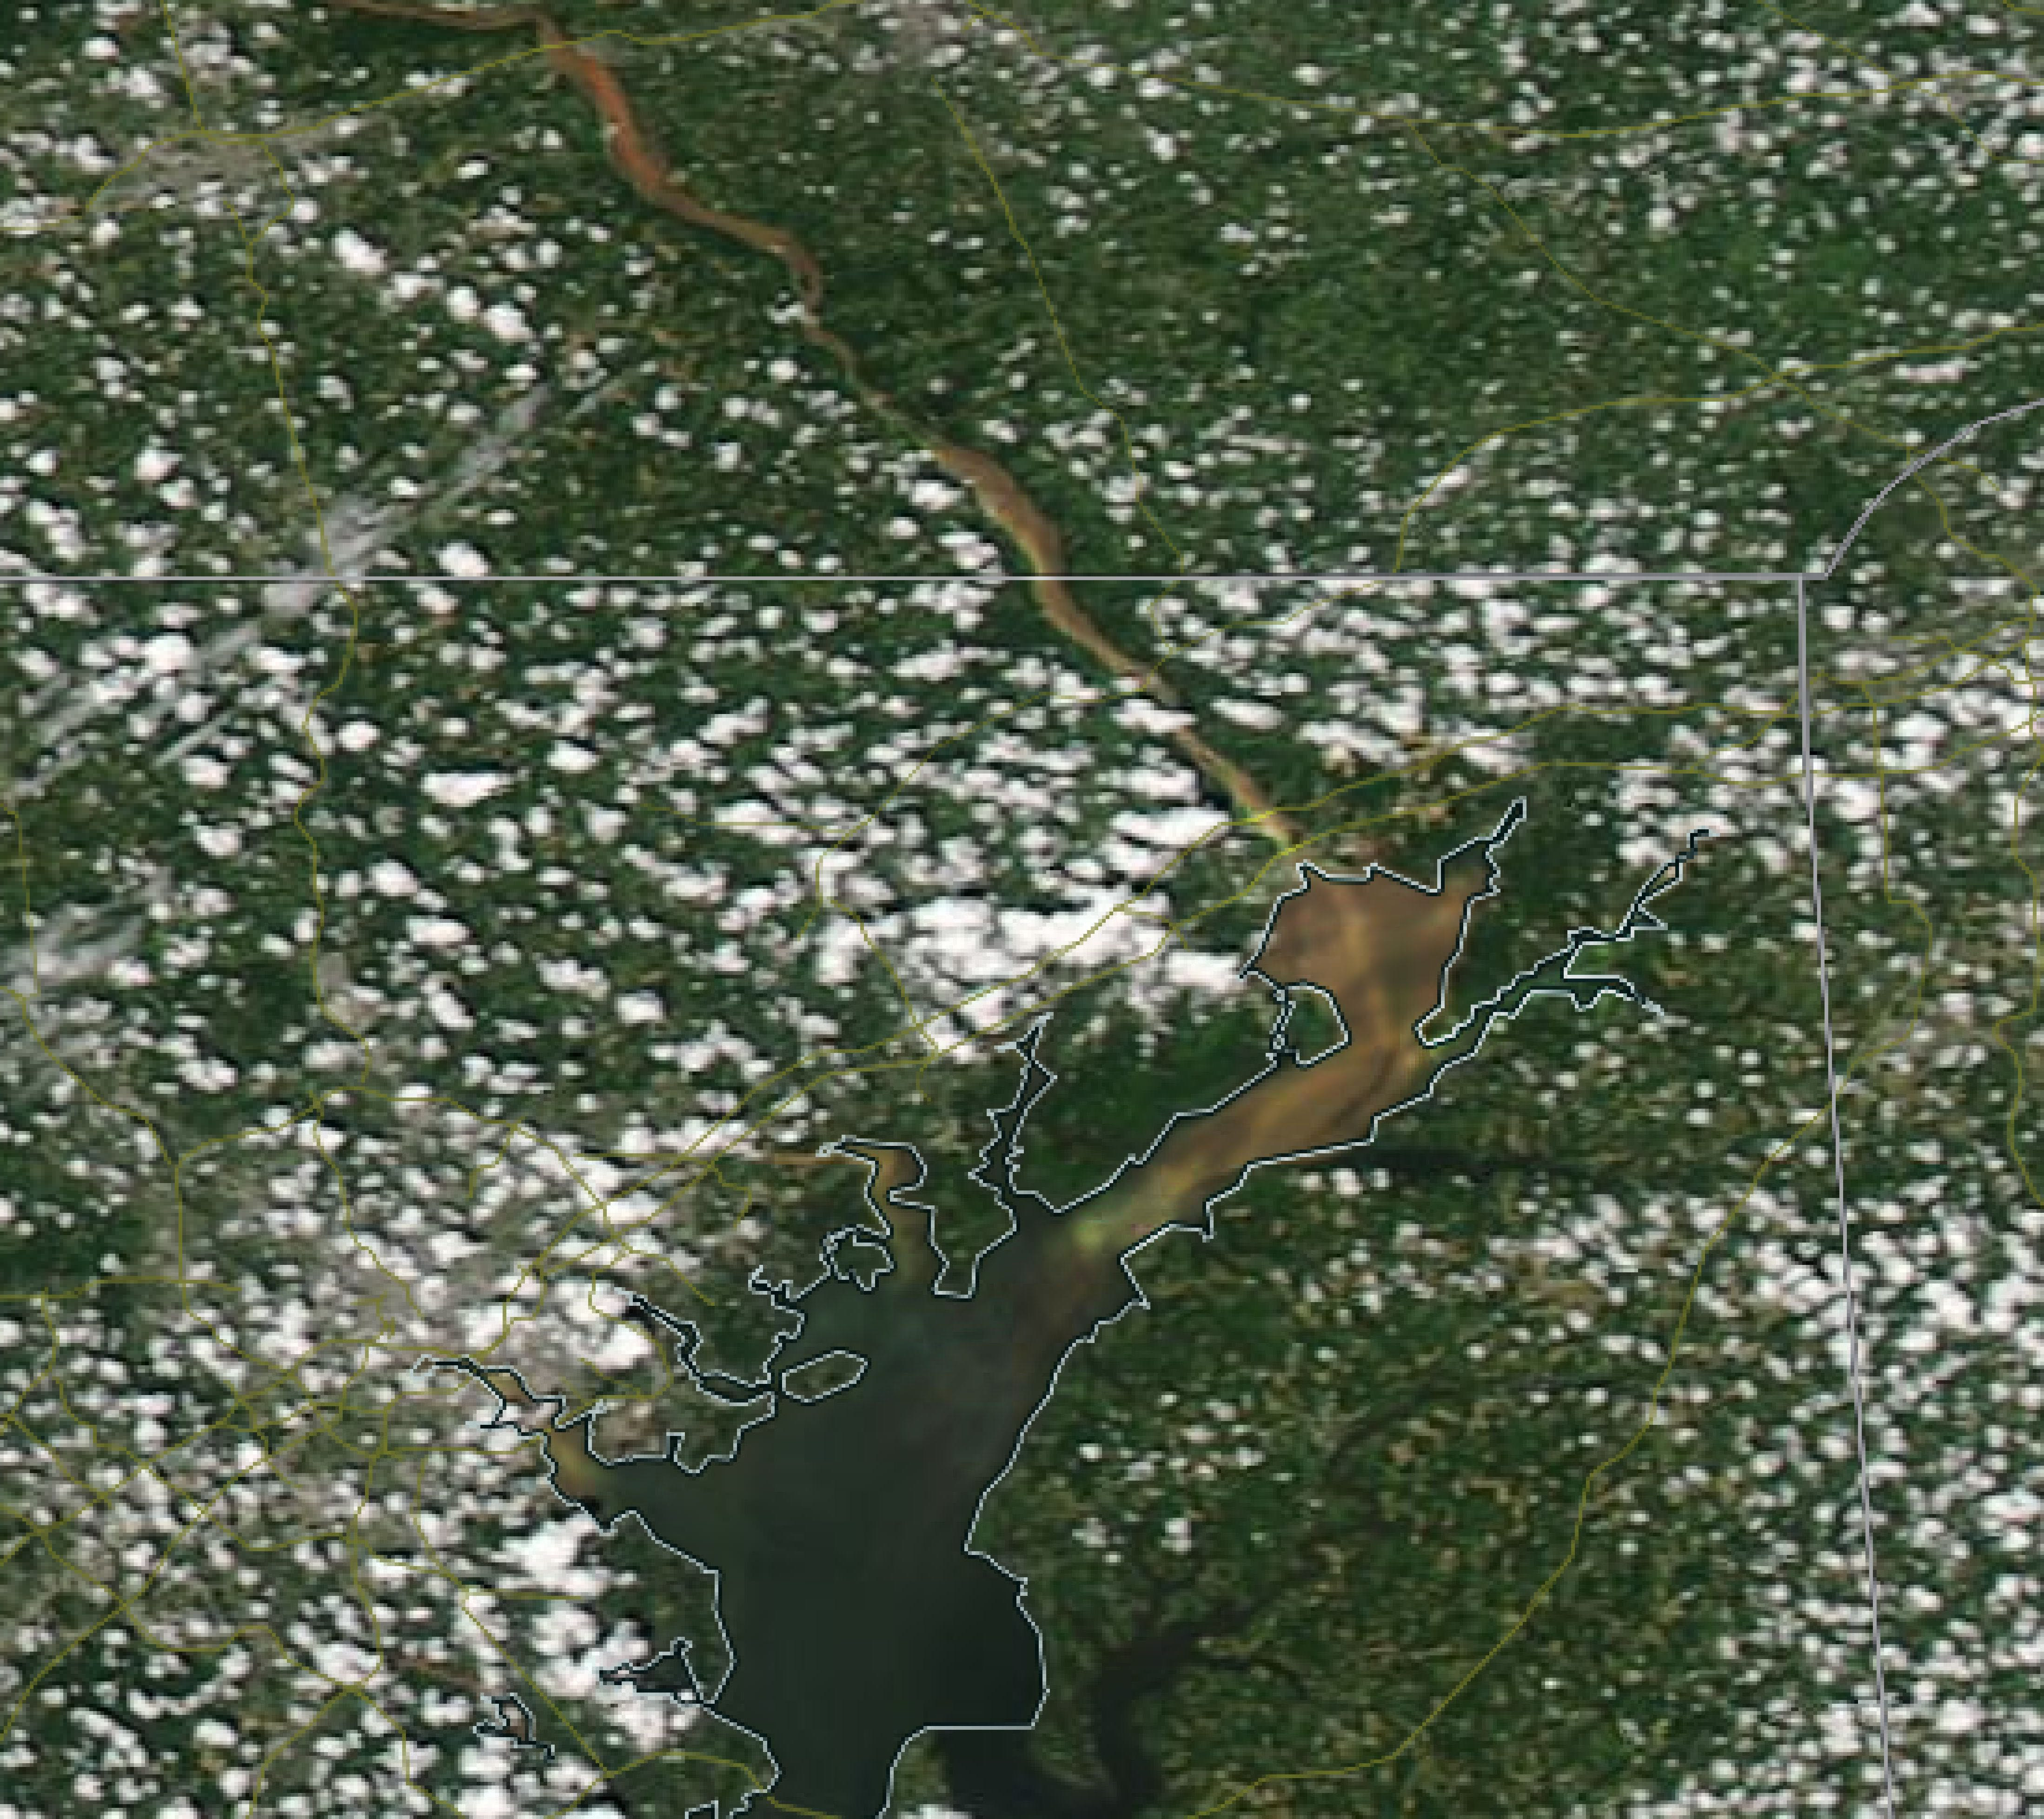 This satellite image of the Susquehanna River shows debris and sediment flowing into the Chesapeake Bay after a massive storm.